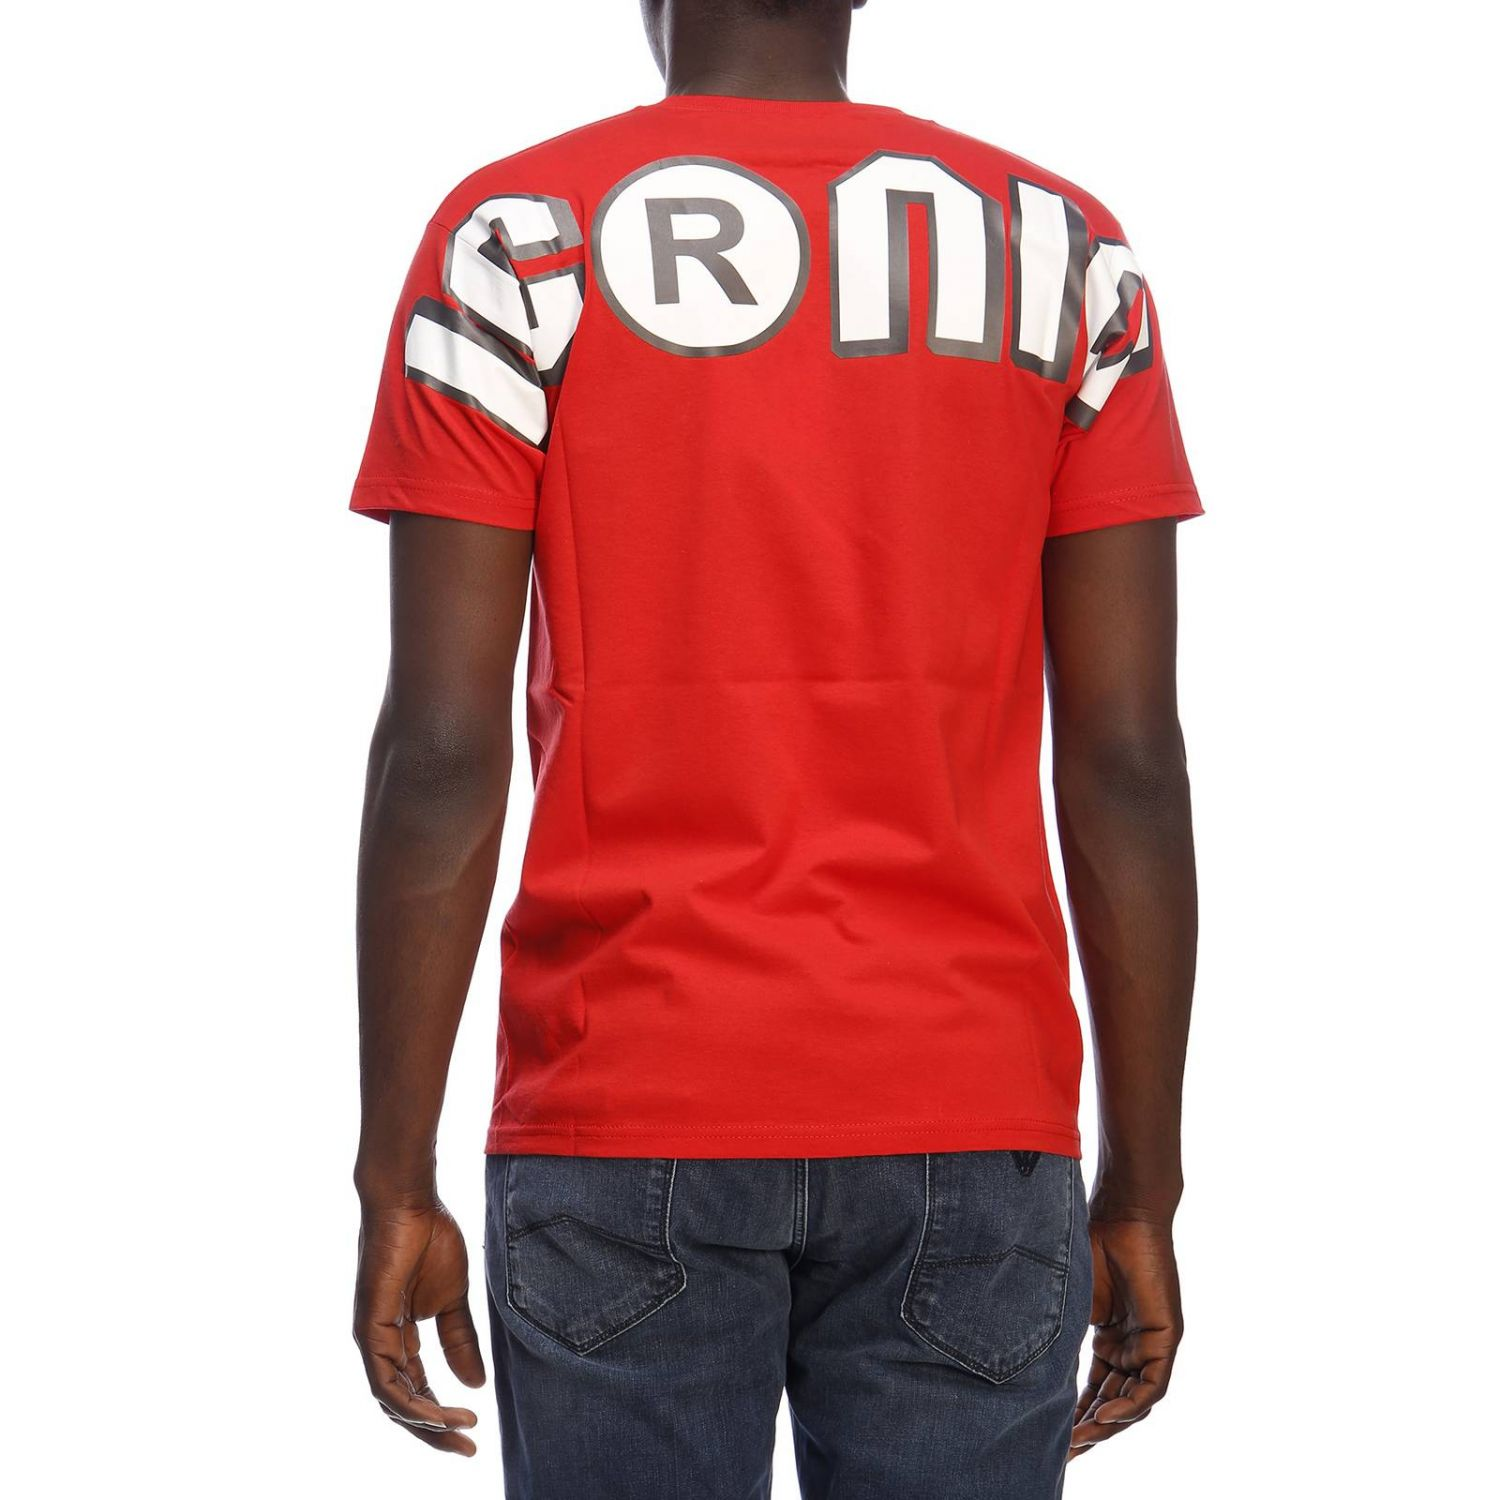 T-shirt men Sold Out red 3